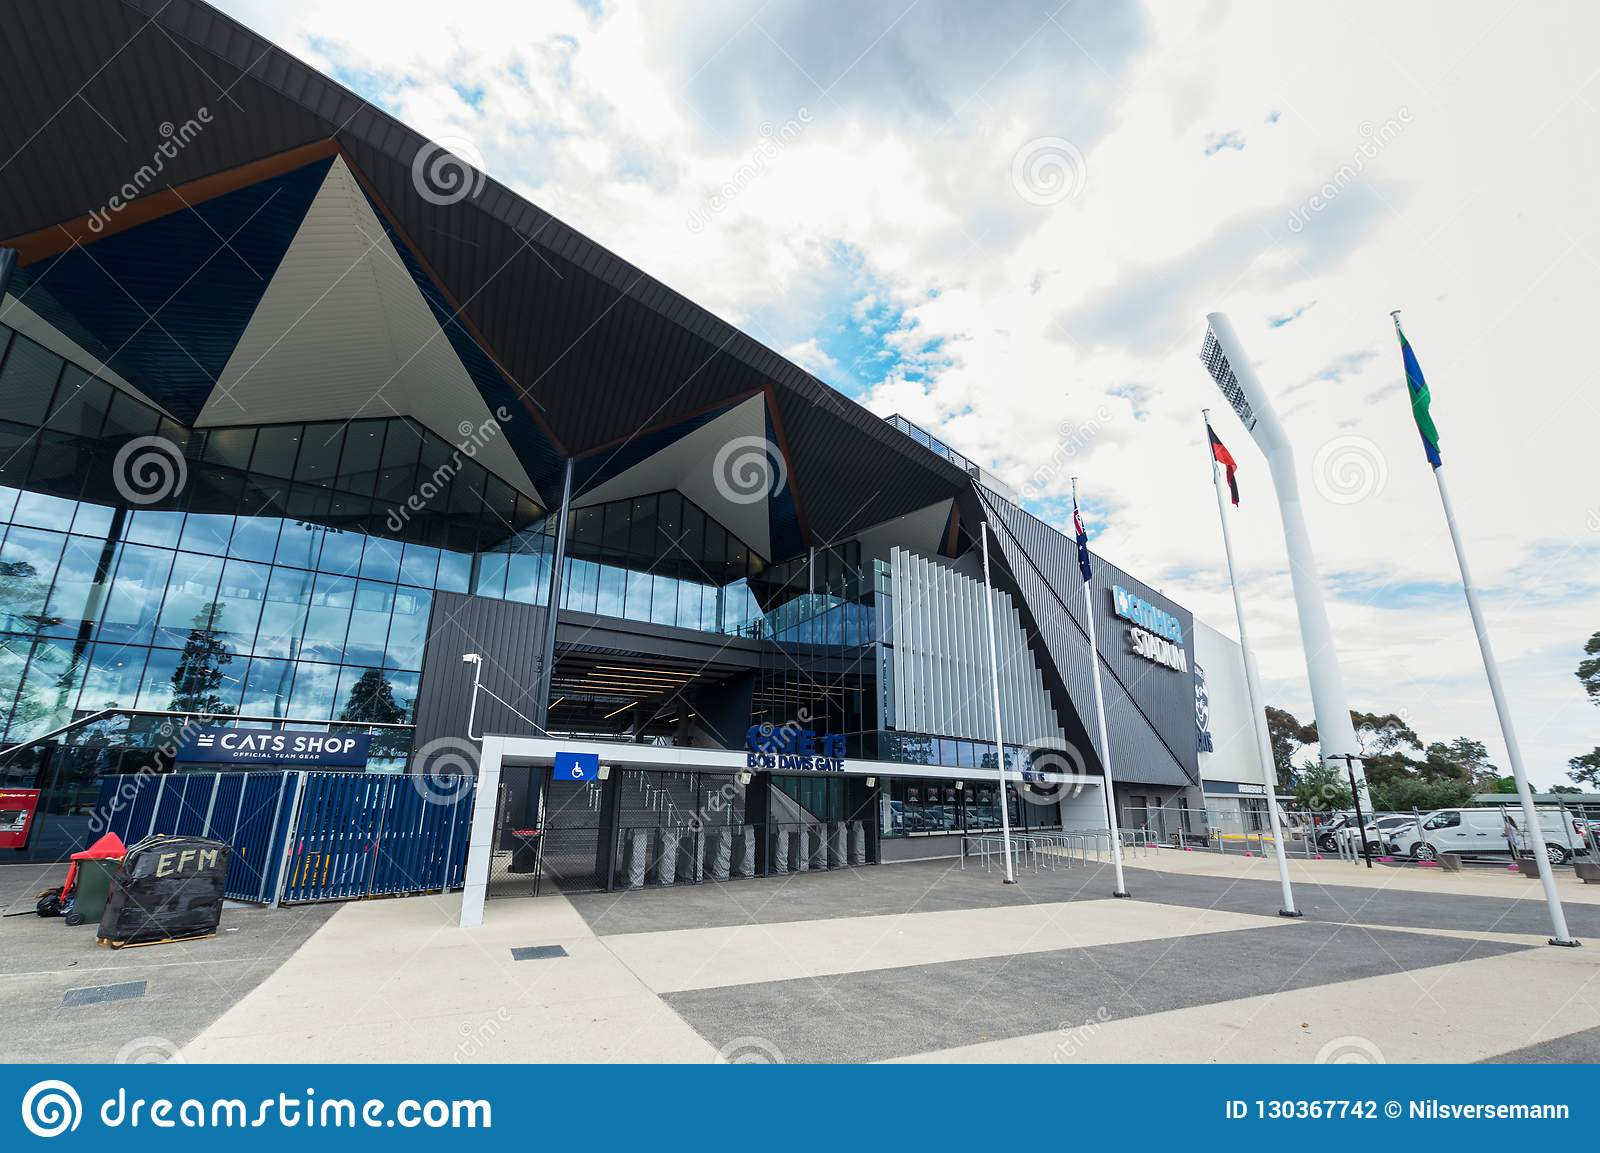 252 Afl Stadium Photos Free Royalty Free Stock Photos From Dreamstime